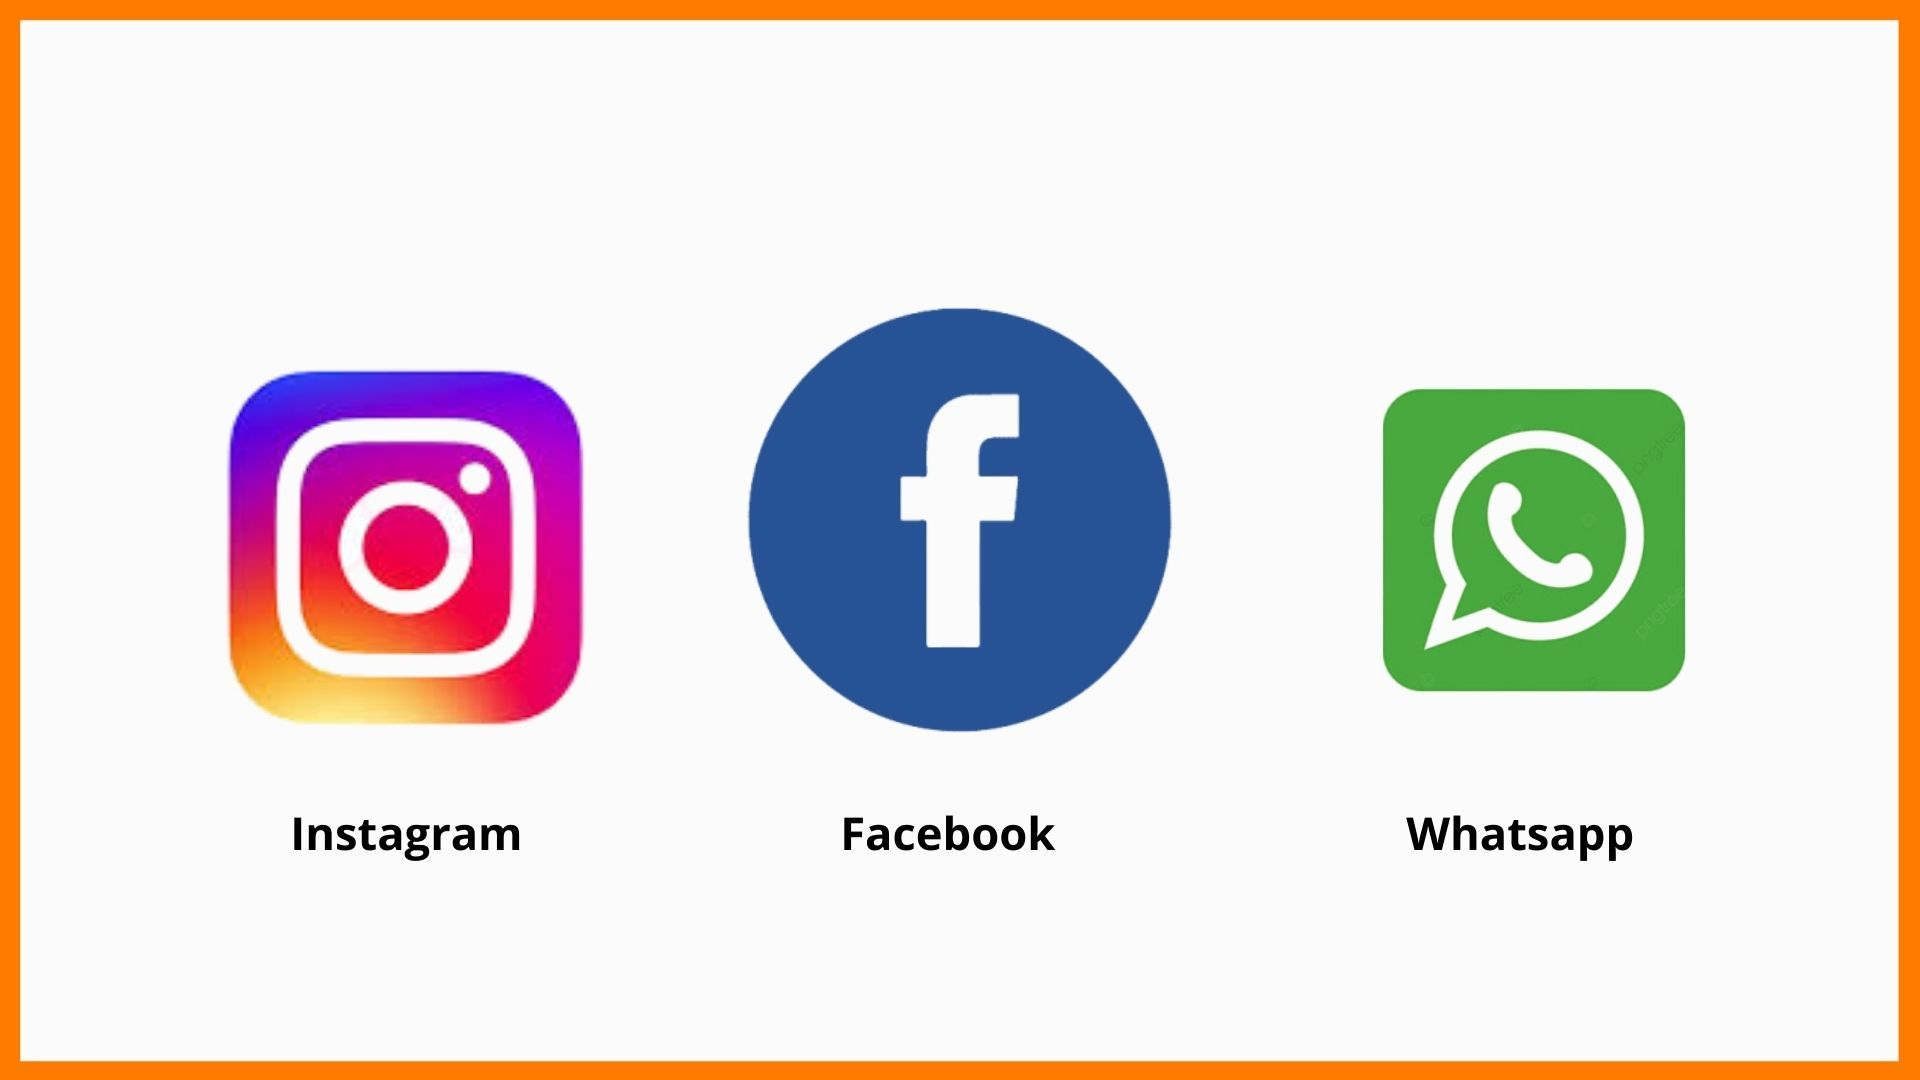 The 3 main social networking sites owned by Mark Zuckerberg